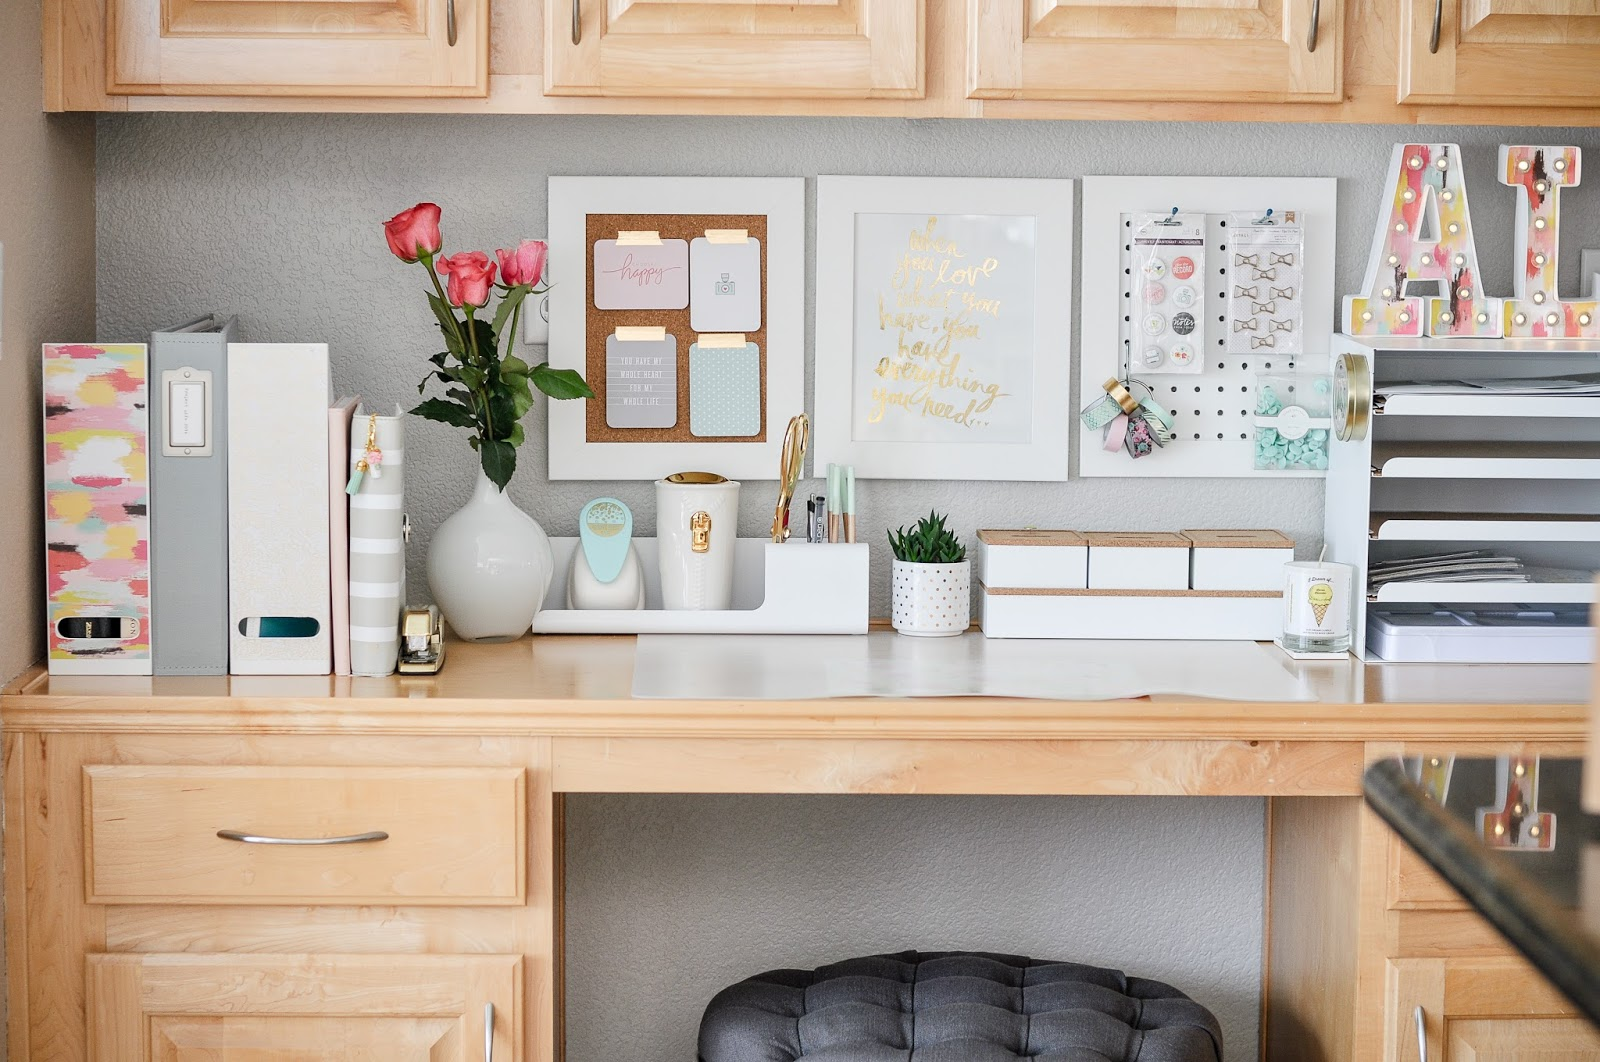 ARTFUL LEIGH: Project Life® and Ikea: How to Organize and Simplify